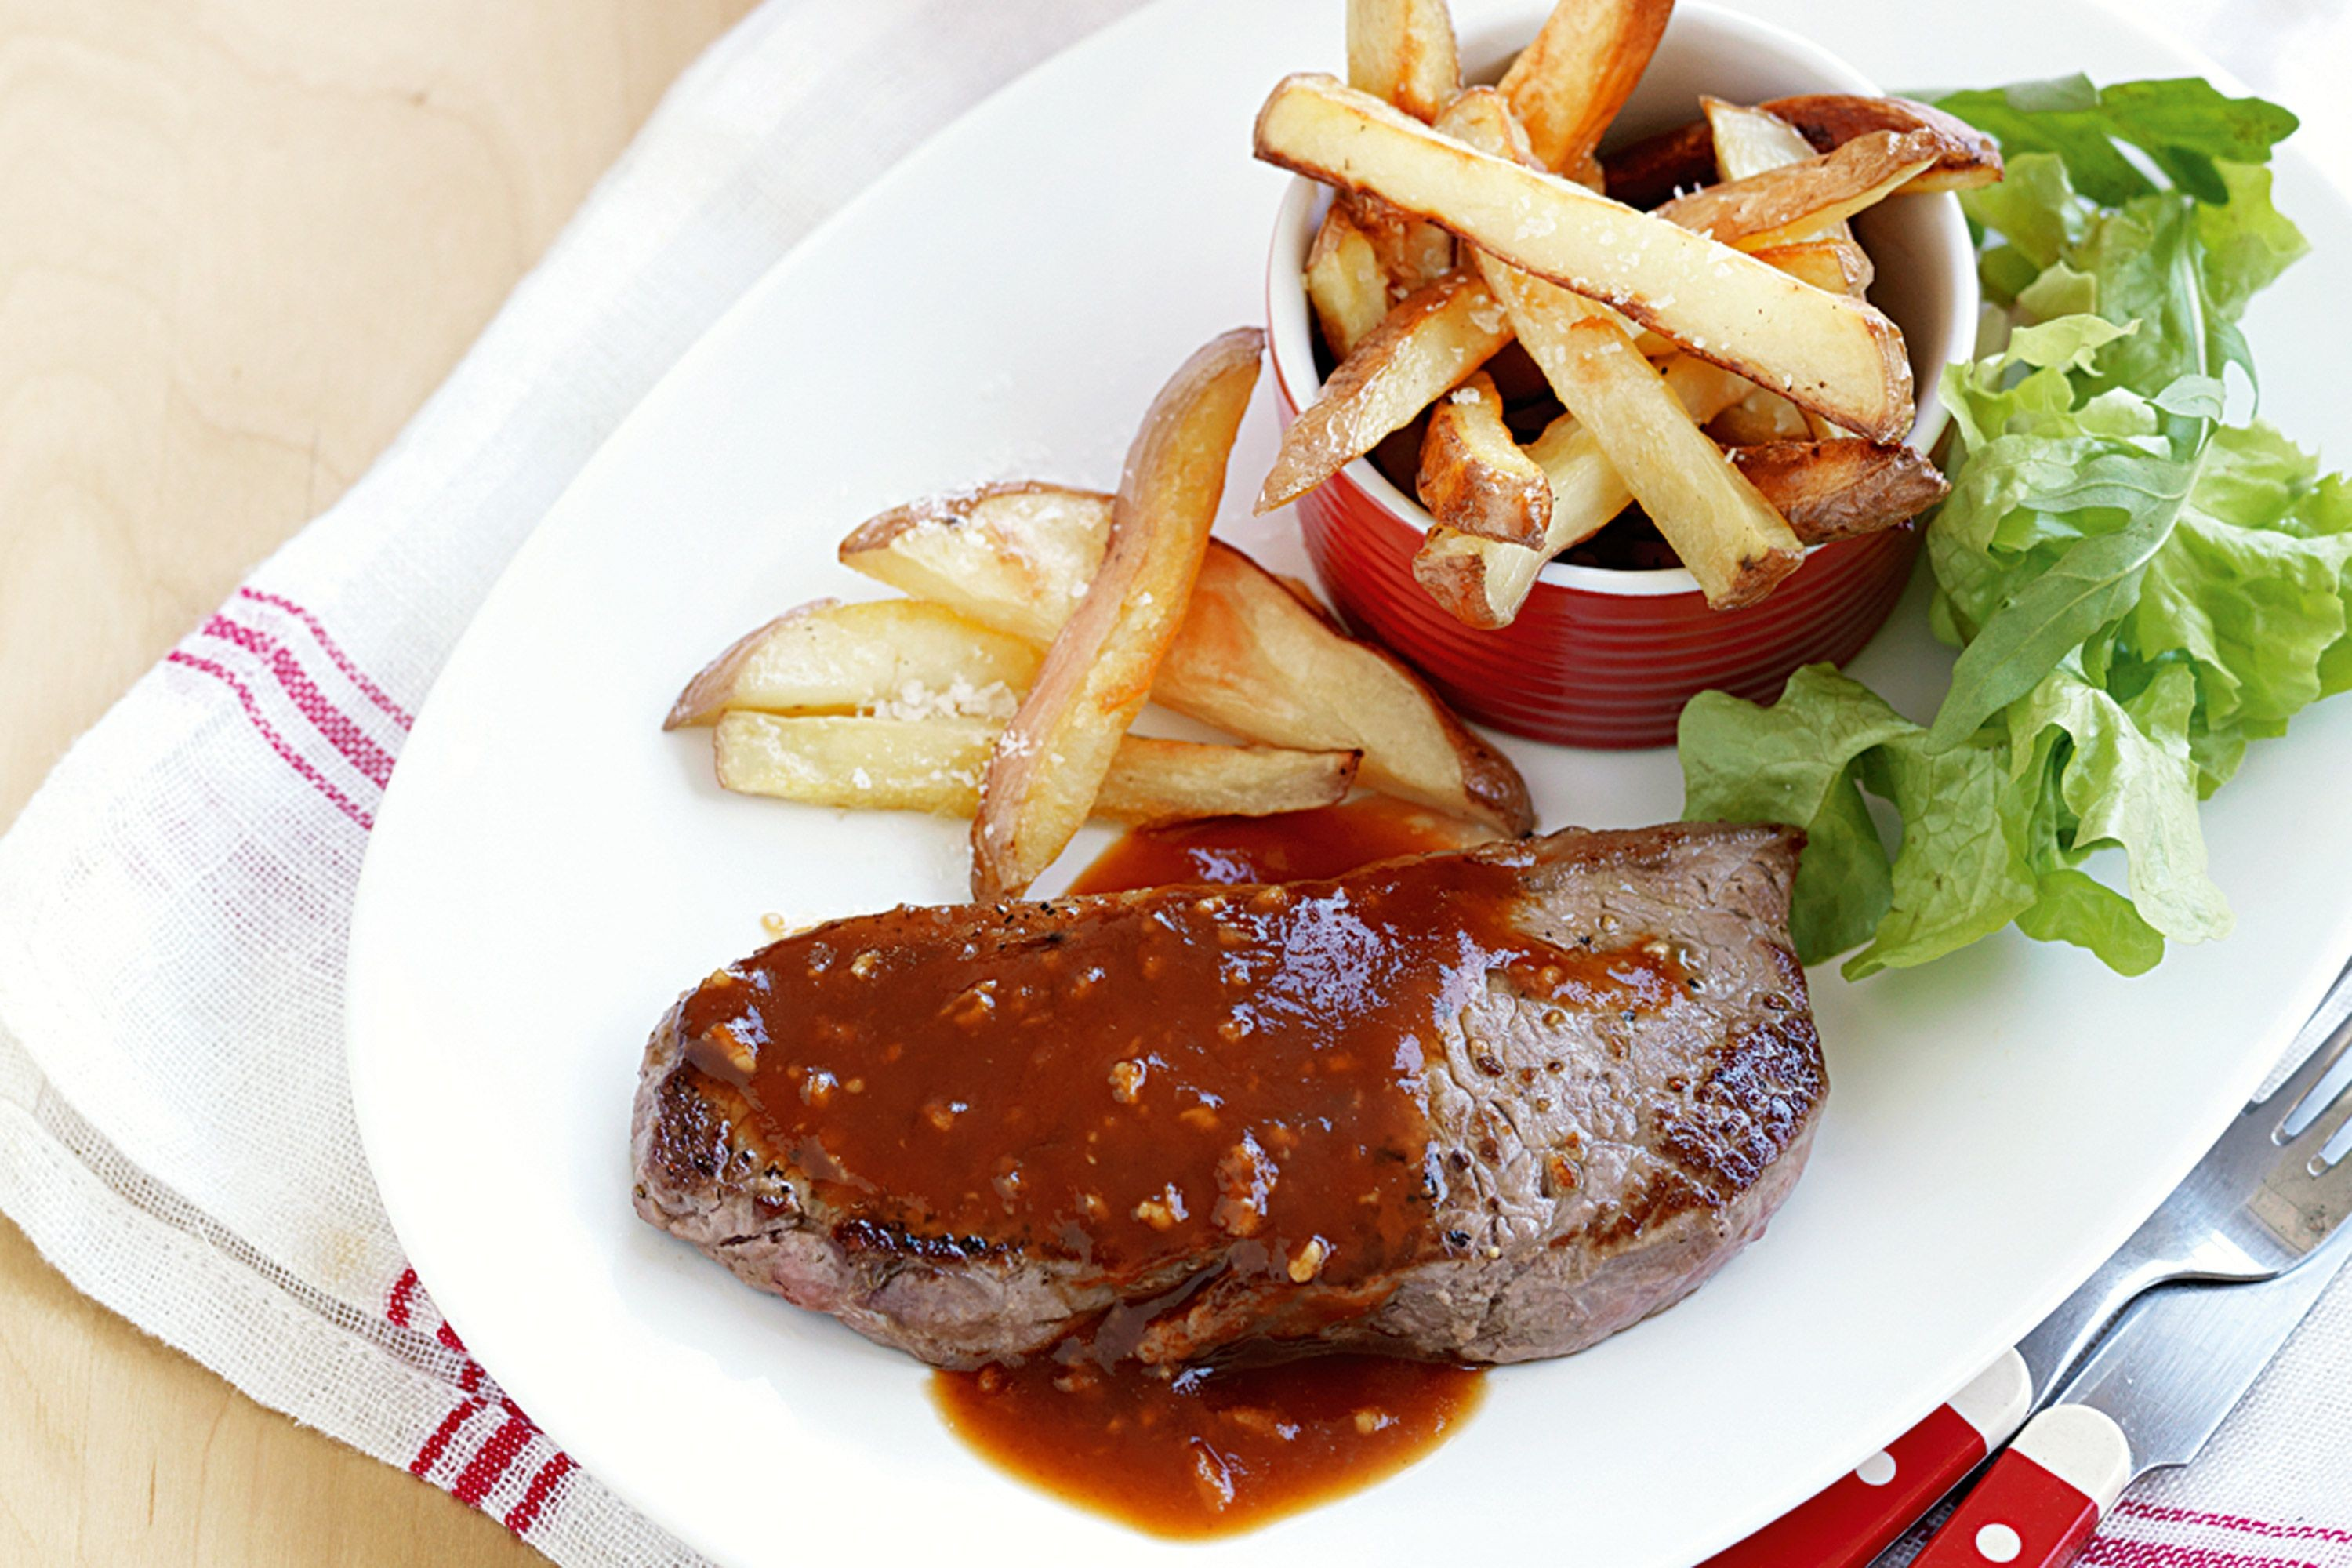 steak-and-chips-with-garlic-sauce-84100-1